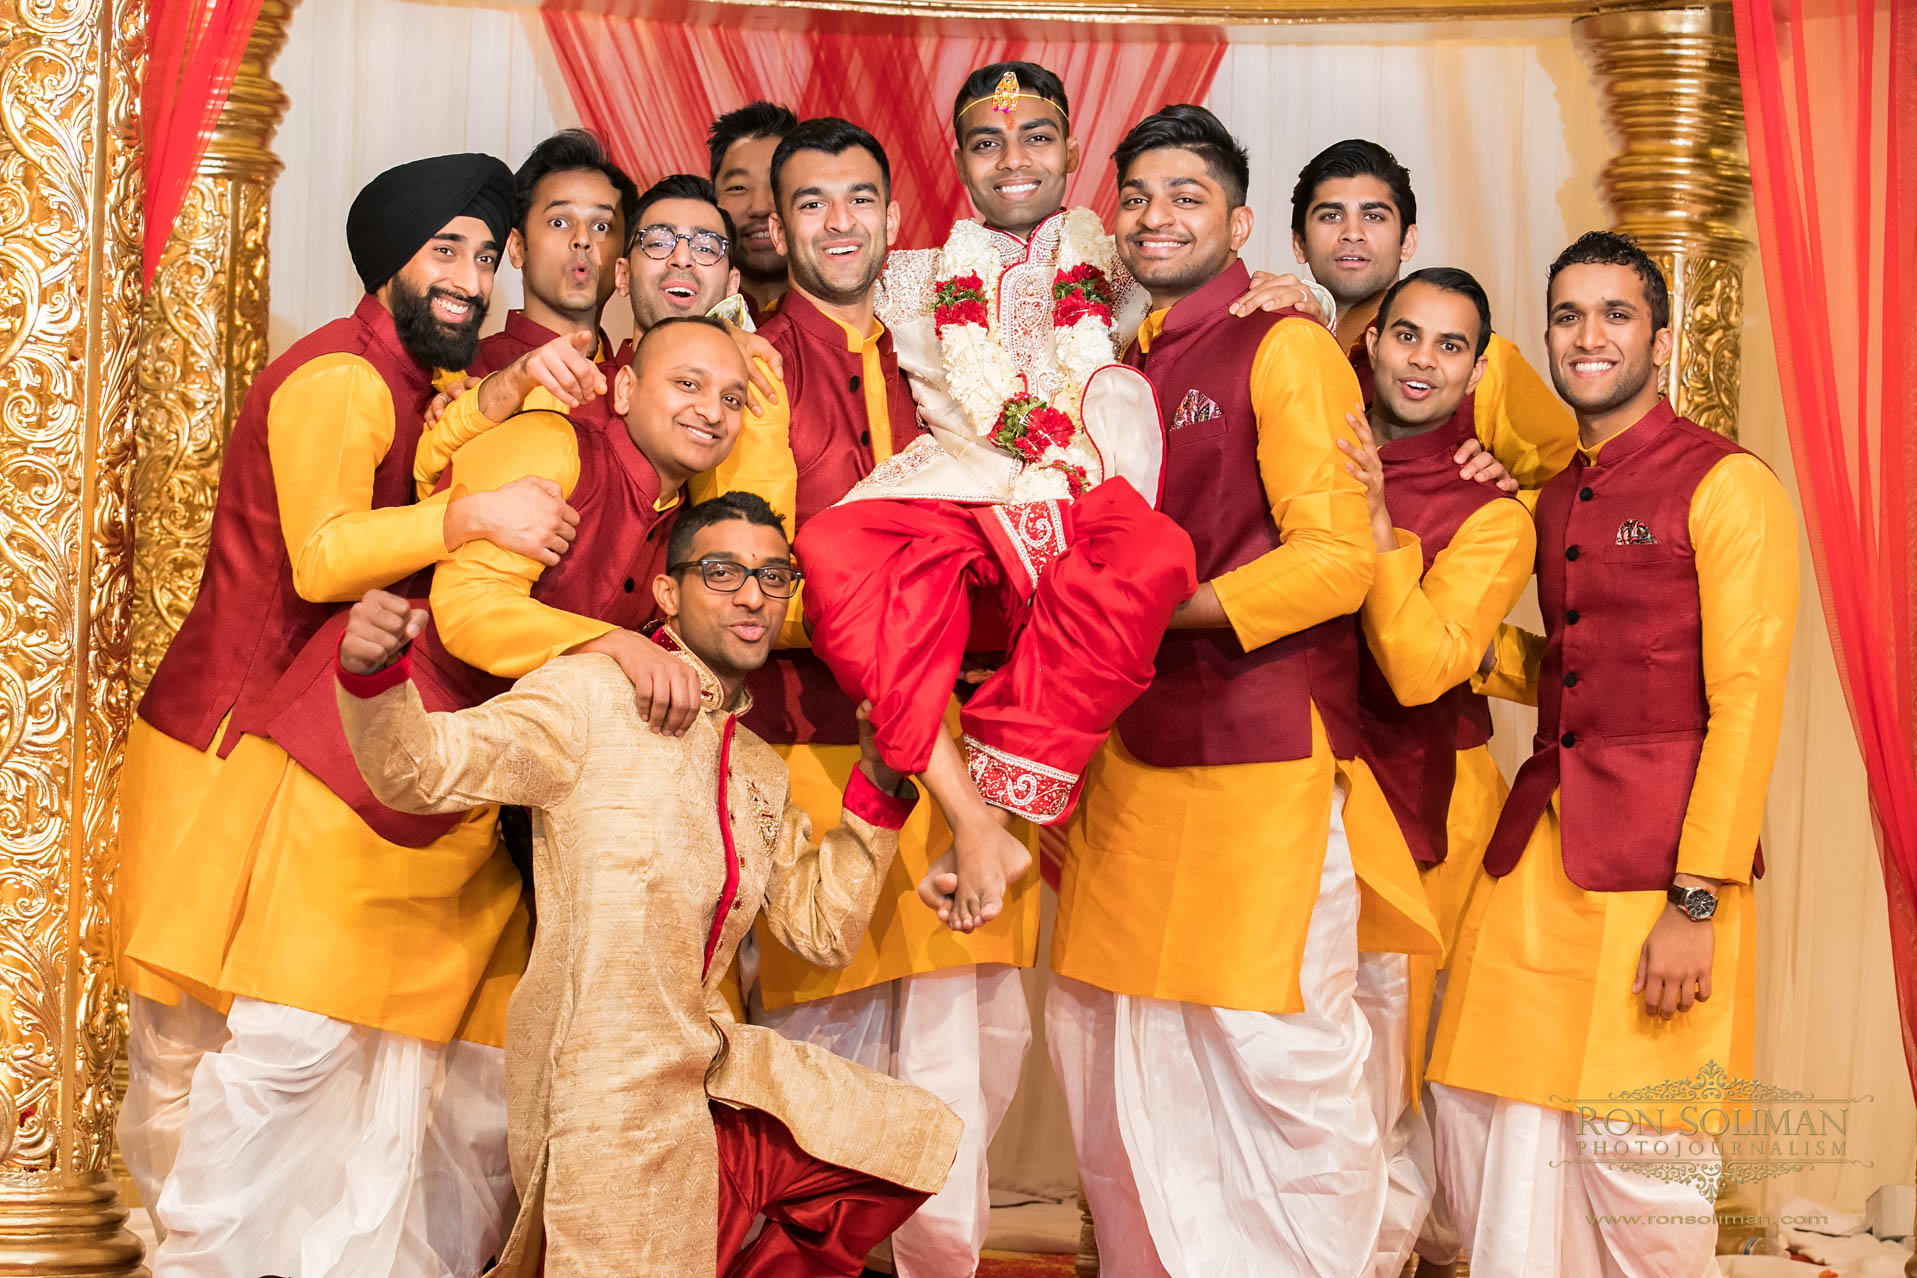 Bharatiya Temple of Metropolitan Detroit Wedding photos